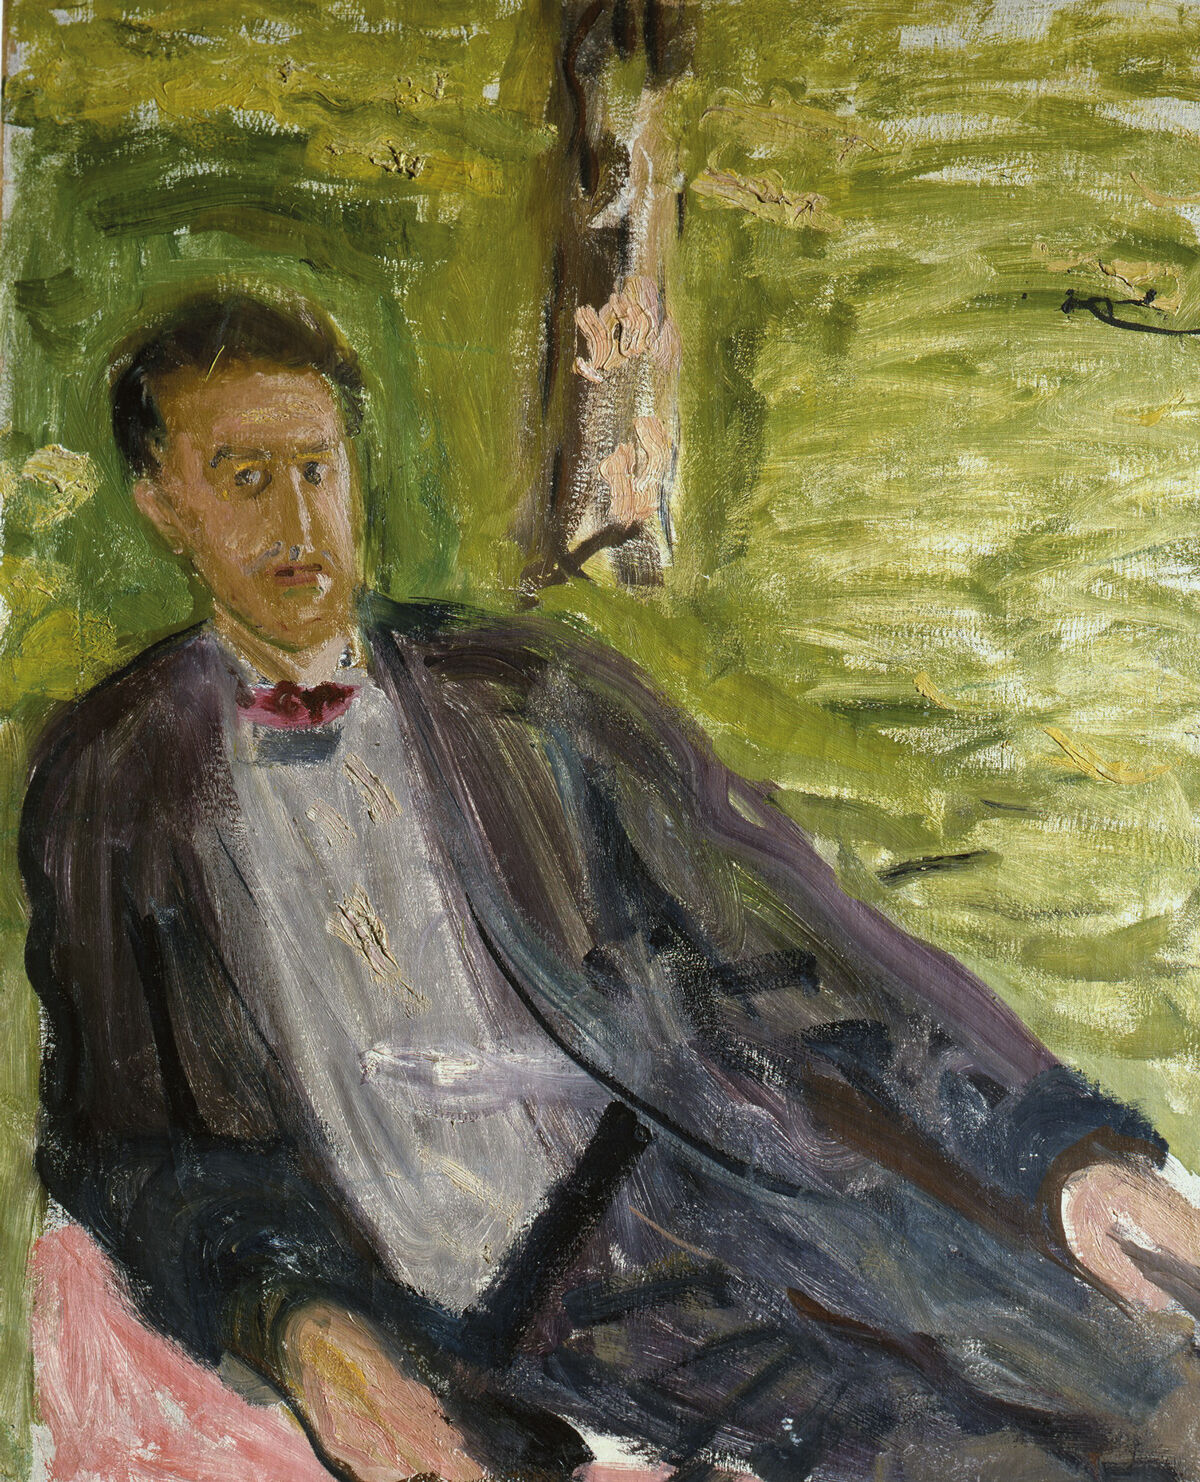 Gerstl, Portrait of a Man (Green background), 1908.